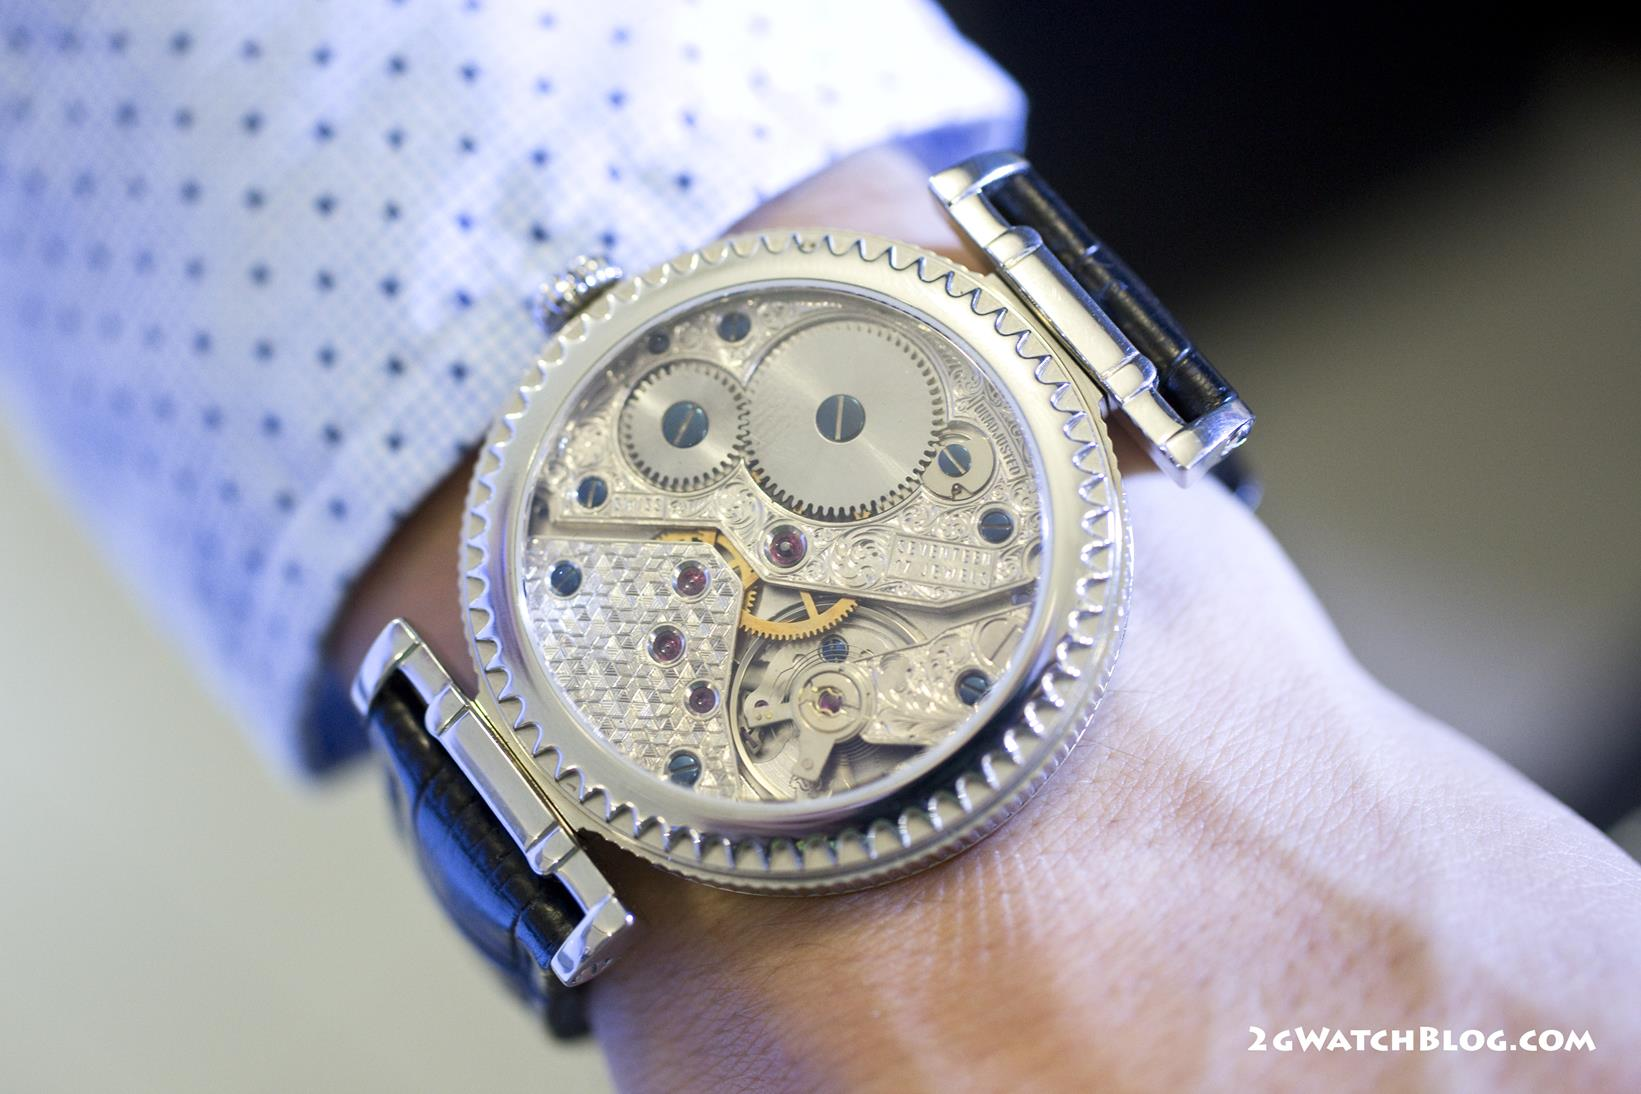 Aurochronos part 4 – FineWatchesBerlin, Dumet Watches, HavaanTuvali, Filipe Silva, G.Gerlach